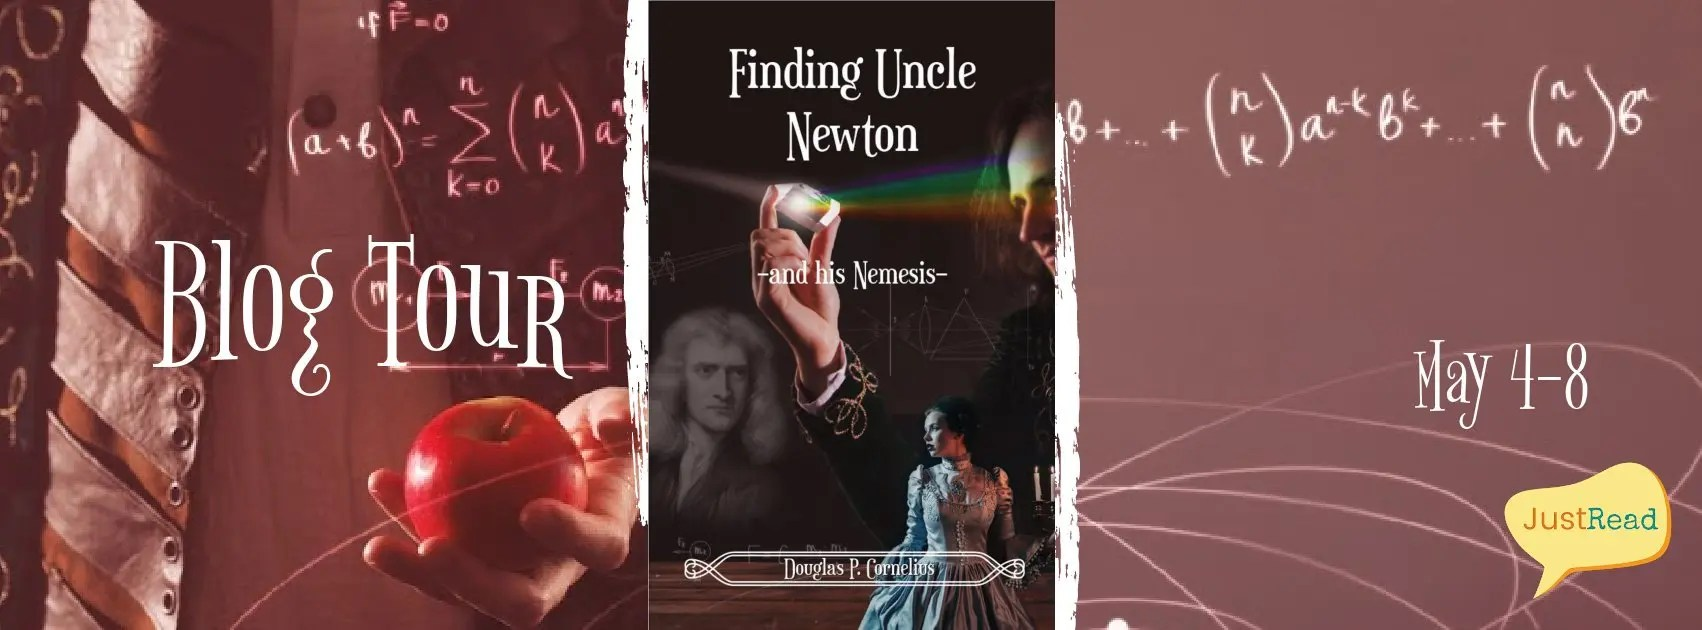 Welcome to the Finding Uncle Newton Blog Tour & Giveaway!